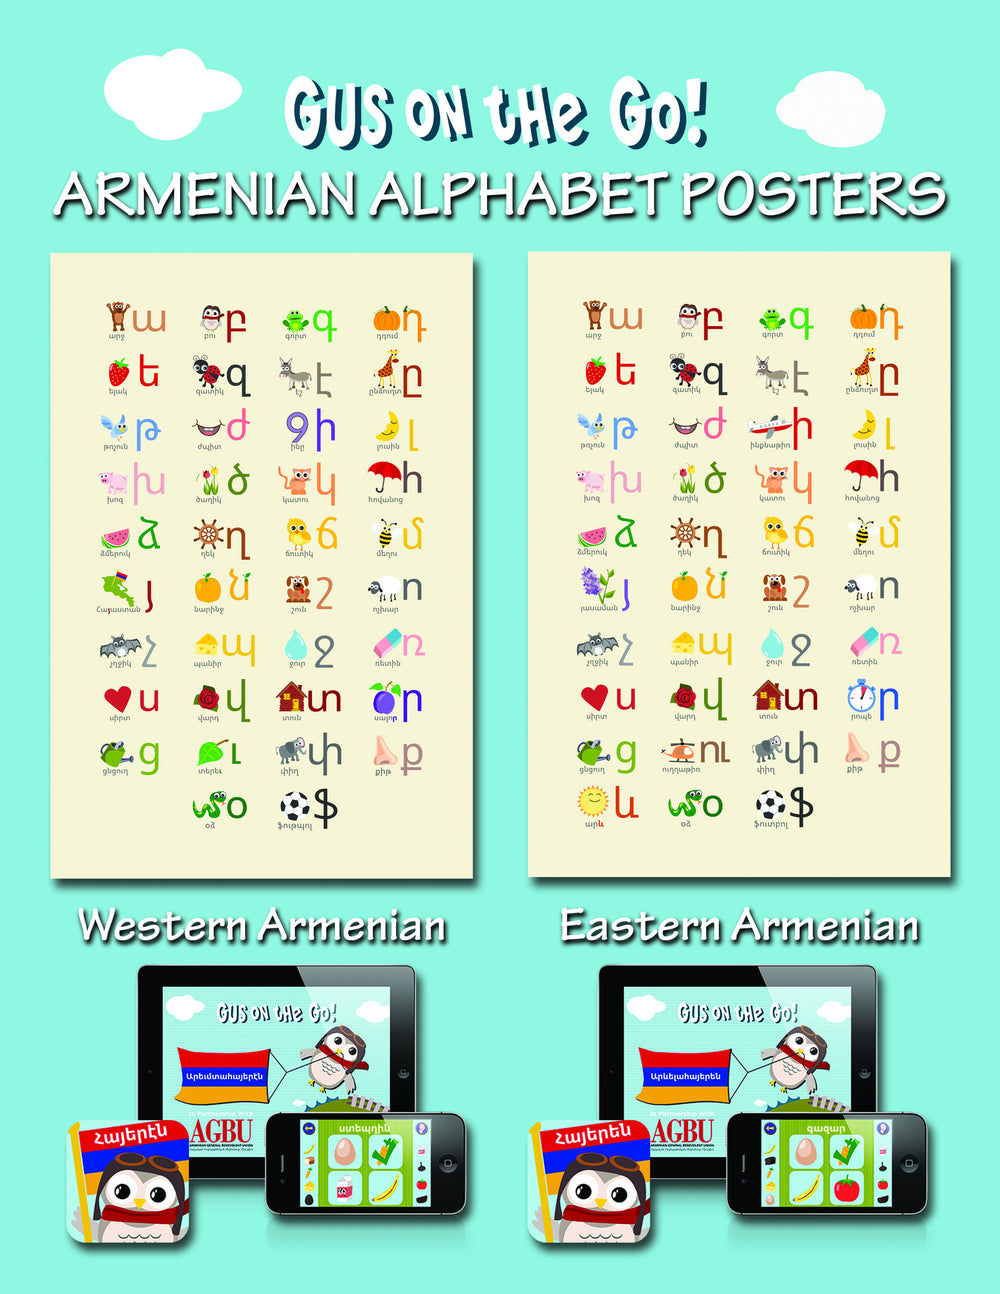 Armenian Alphabet Poster by Gus on the Go